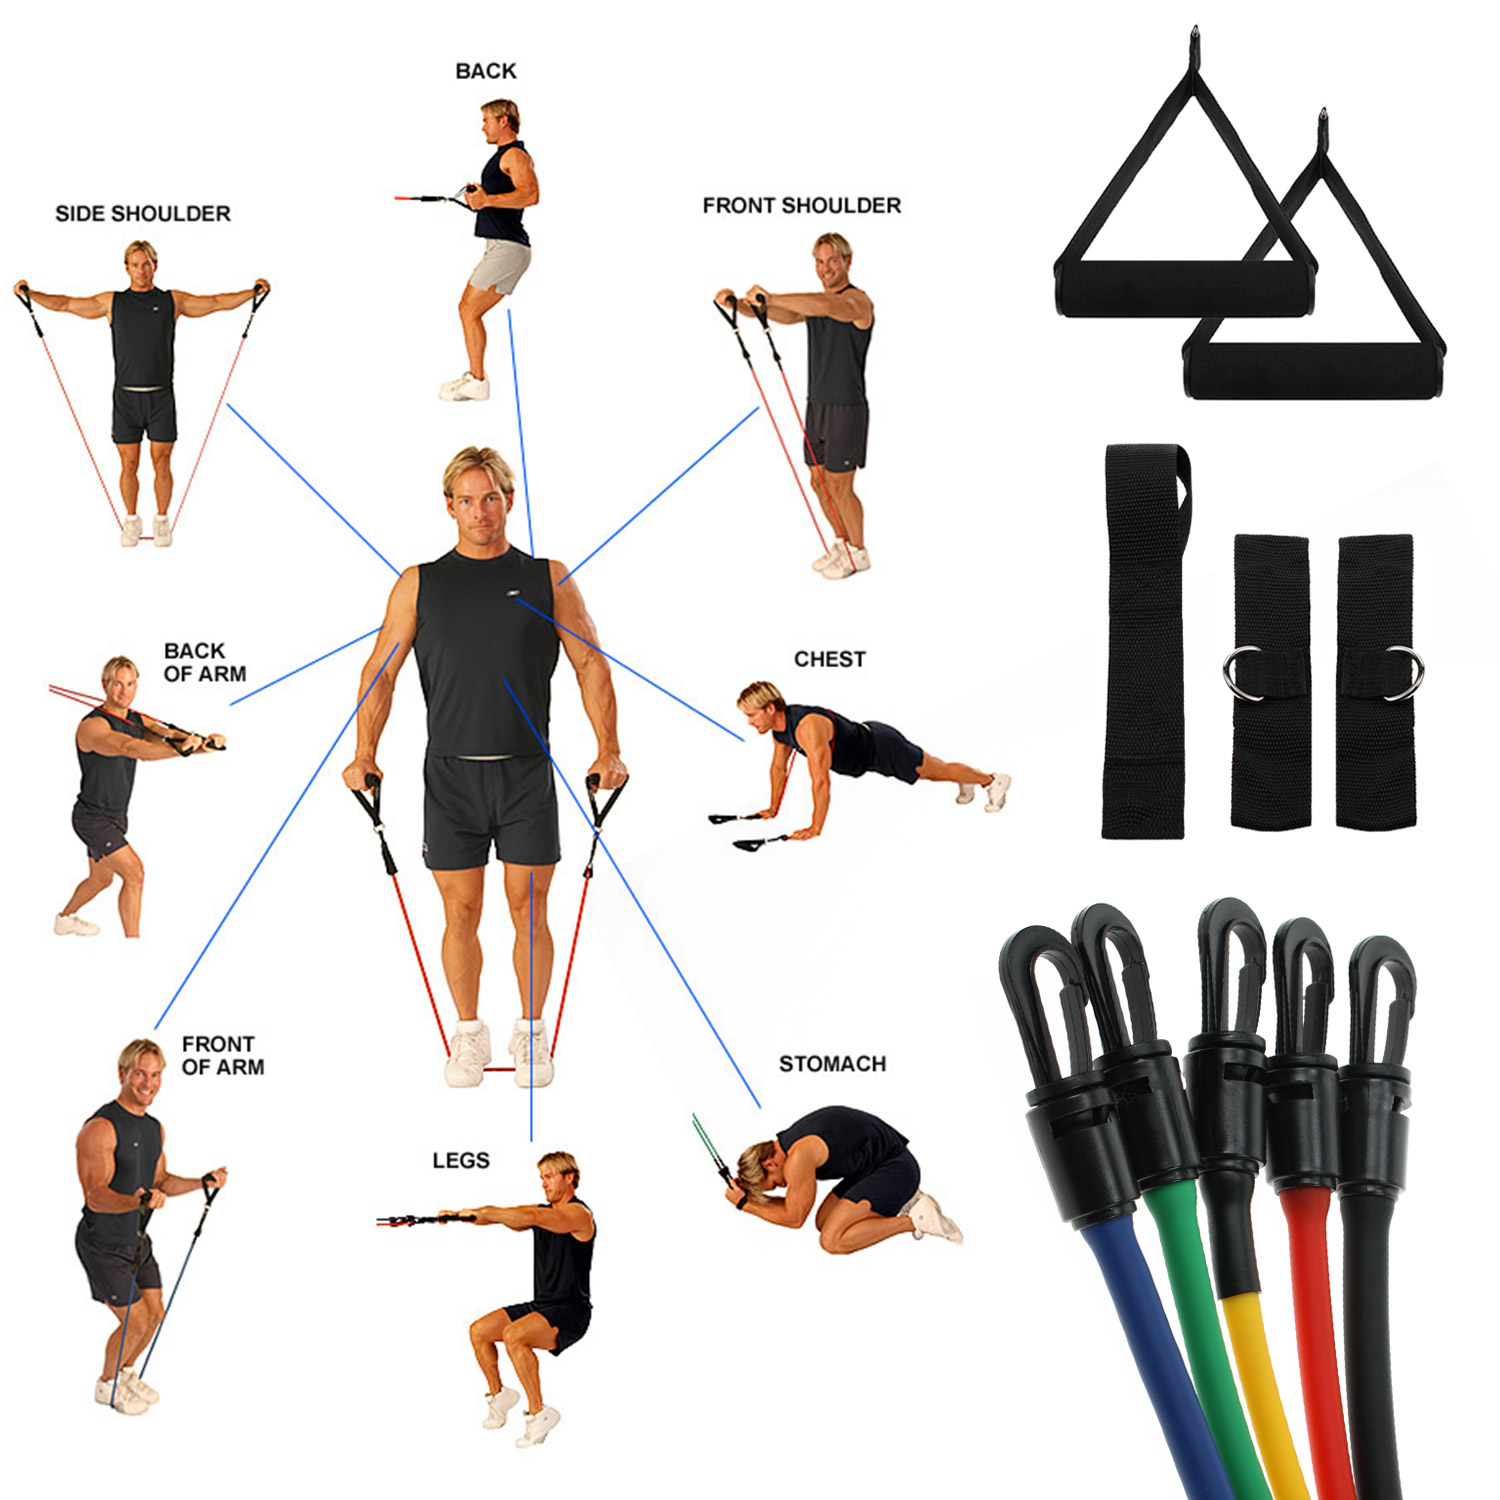 Workout Bands Com: 5 Resistance Workout Bands For P90X Exercise& Slim In 6